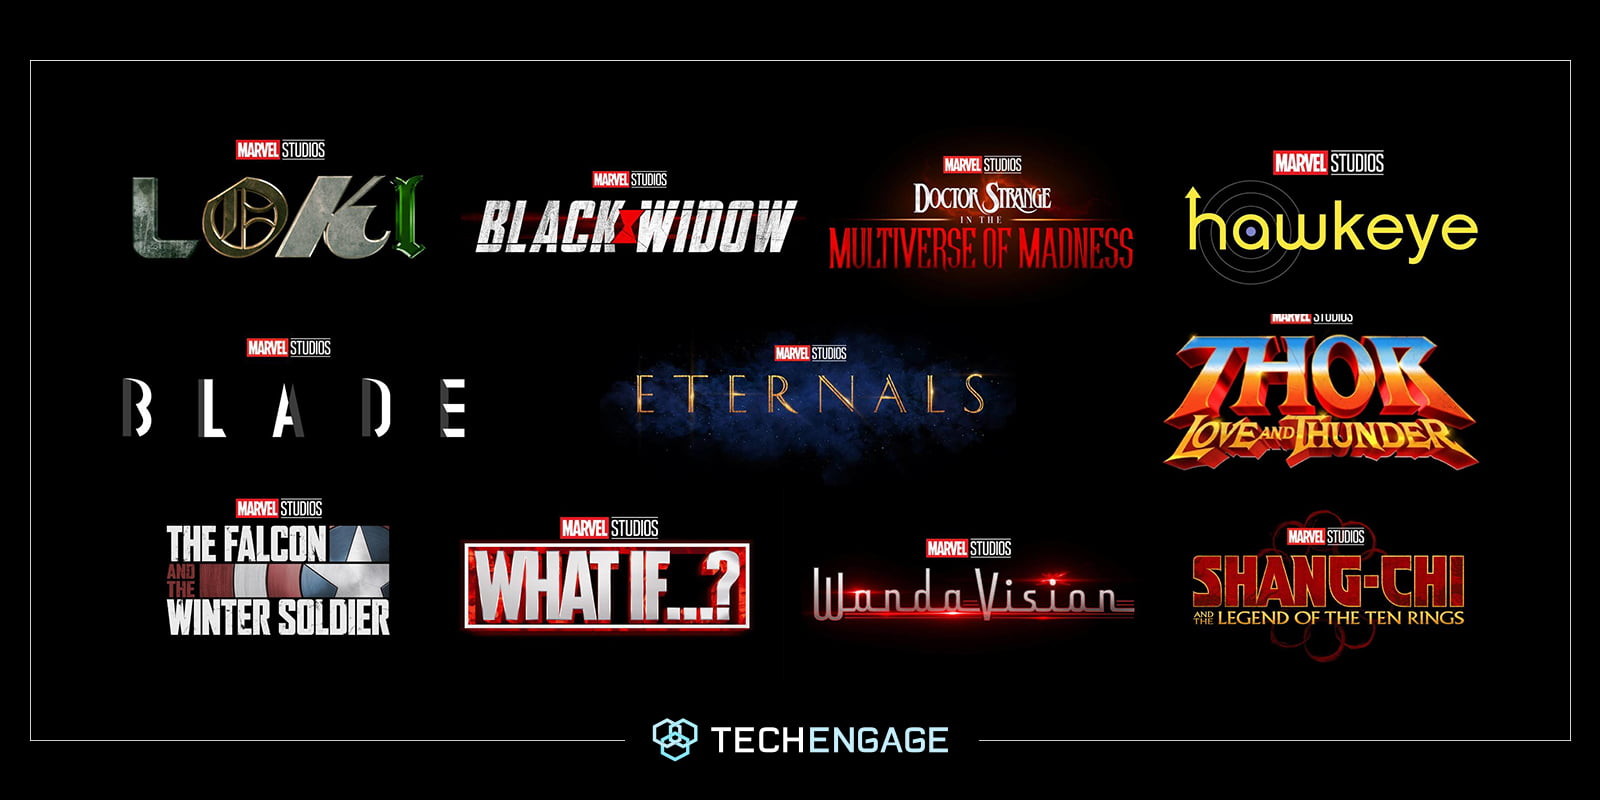 Phase 4 of Marvel movies announced at San Diego Comic-Con 2019